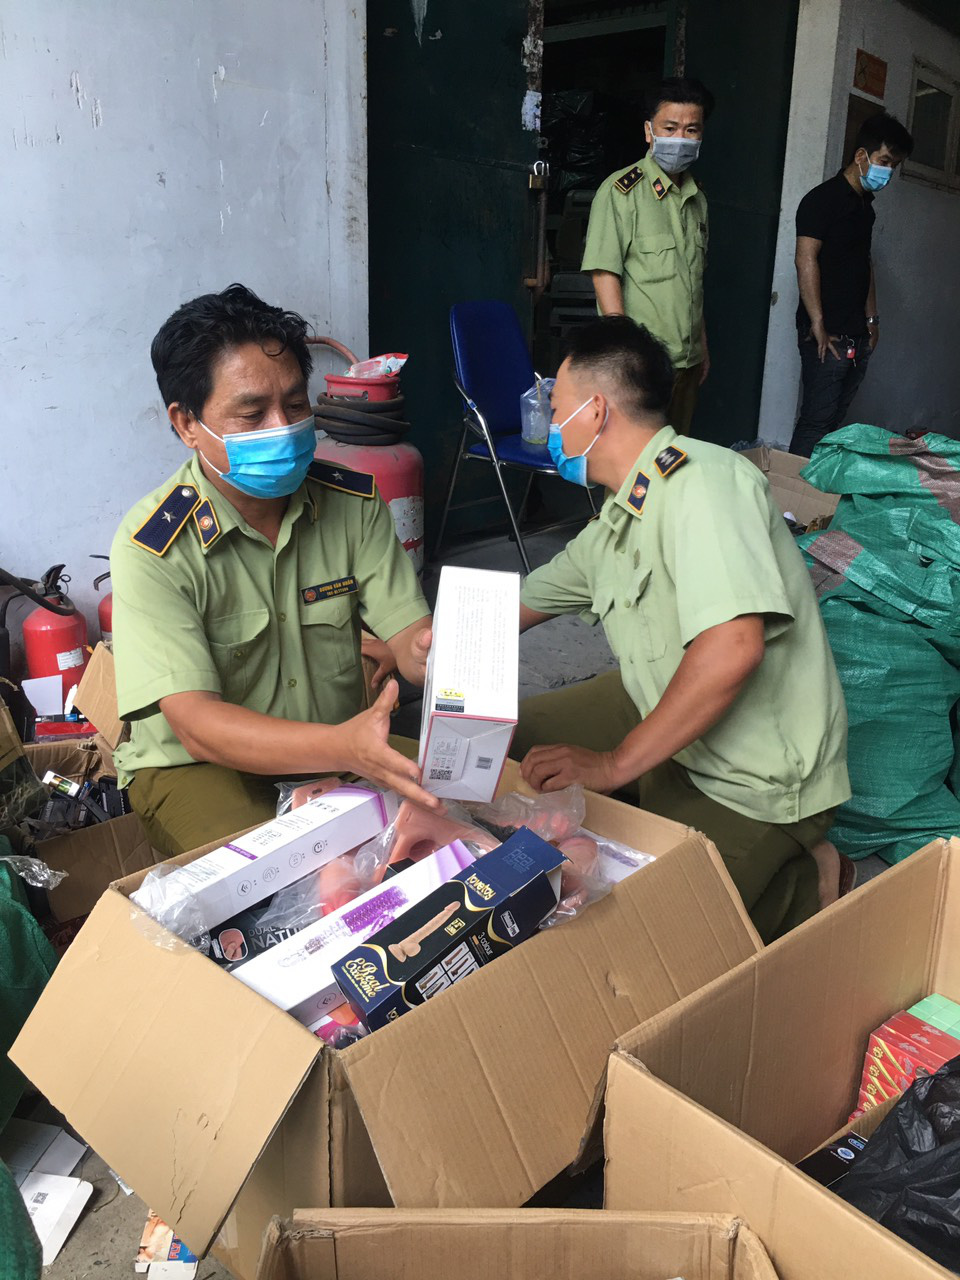 Sex toys of unknown origin found at Ho Chi Minh City warehouse